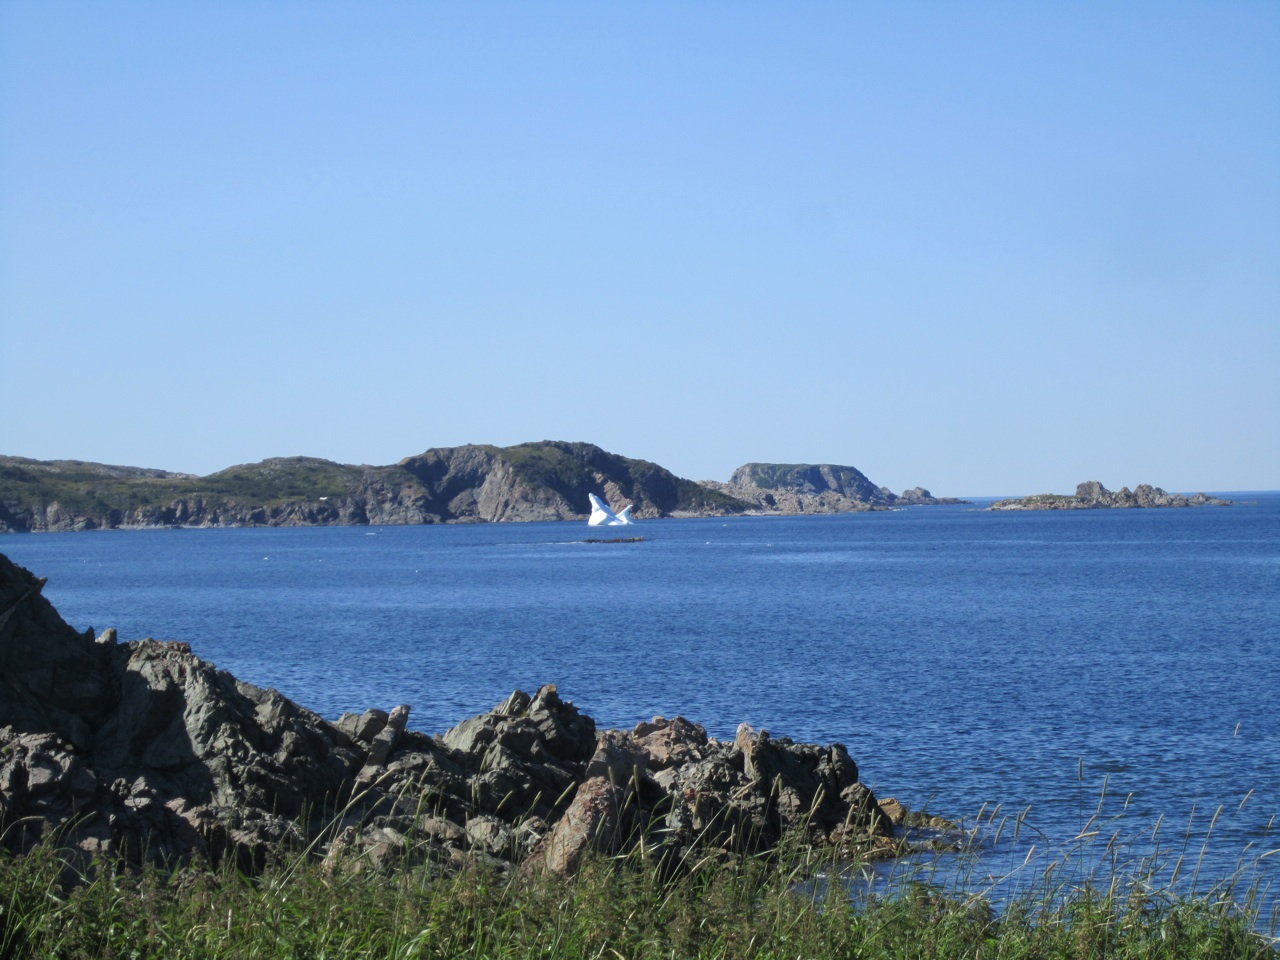 A Large Iceberg In The Waters In Twillingate